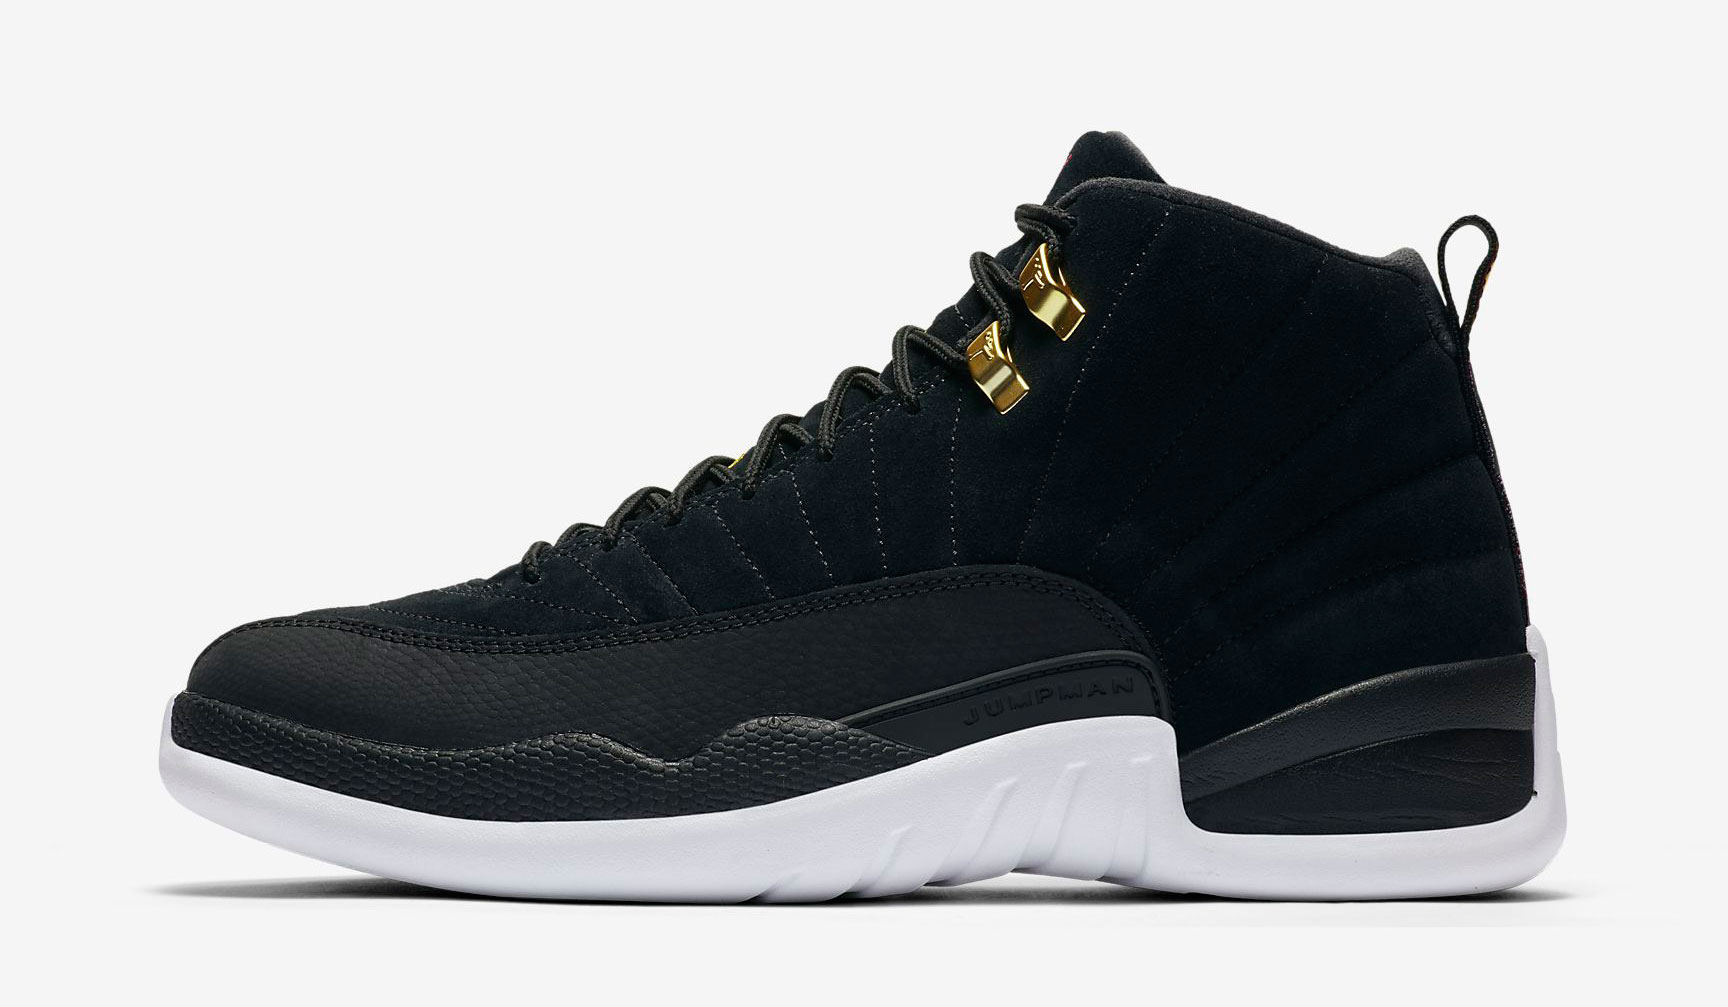 air-jordan-12-reverse-taxi-where-to-buy